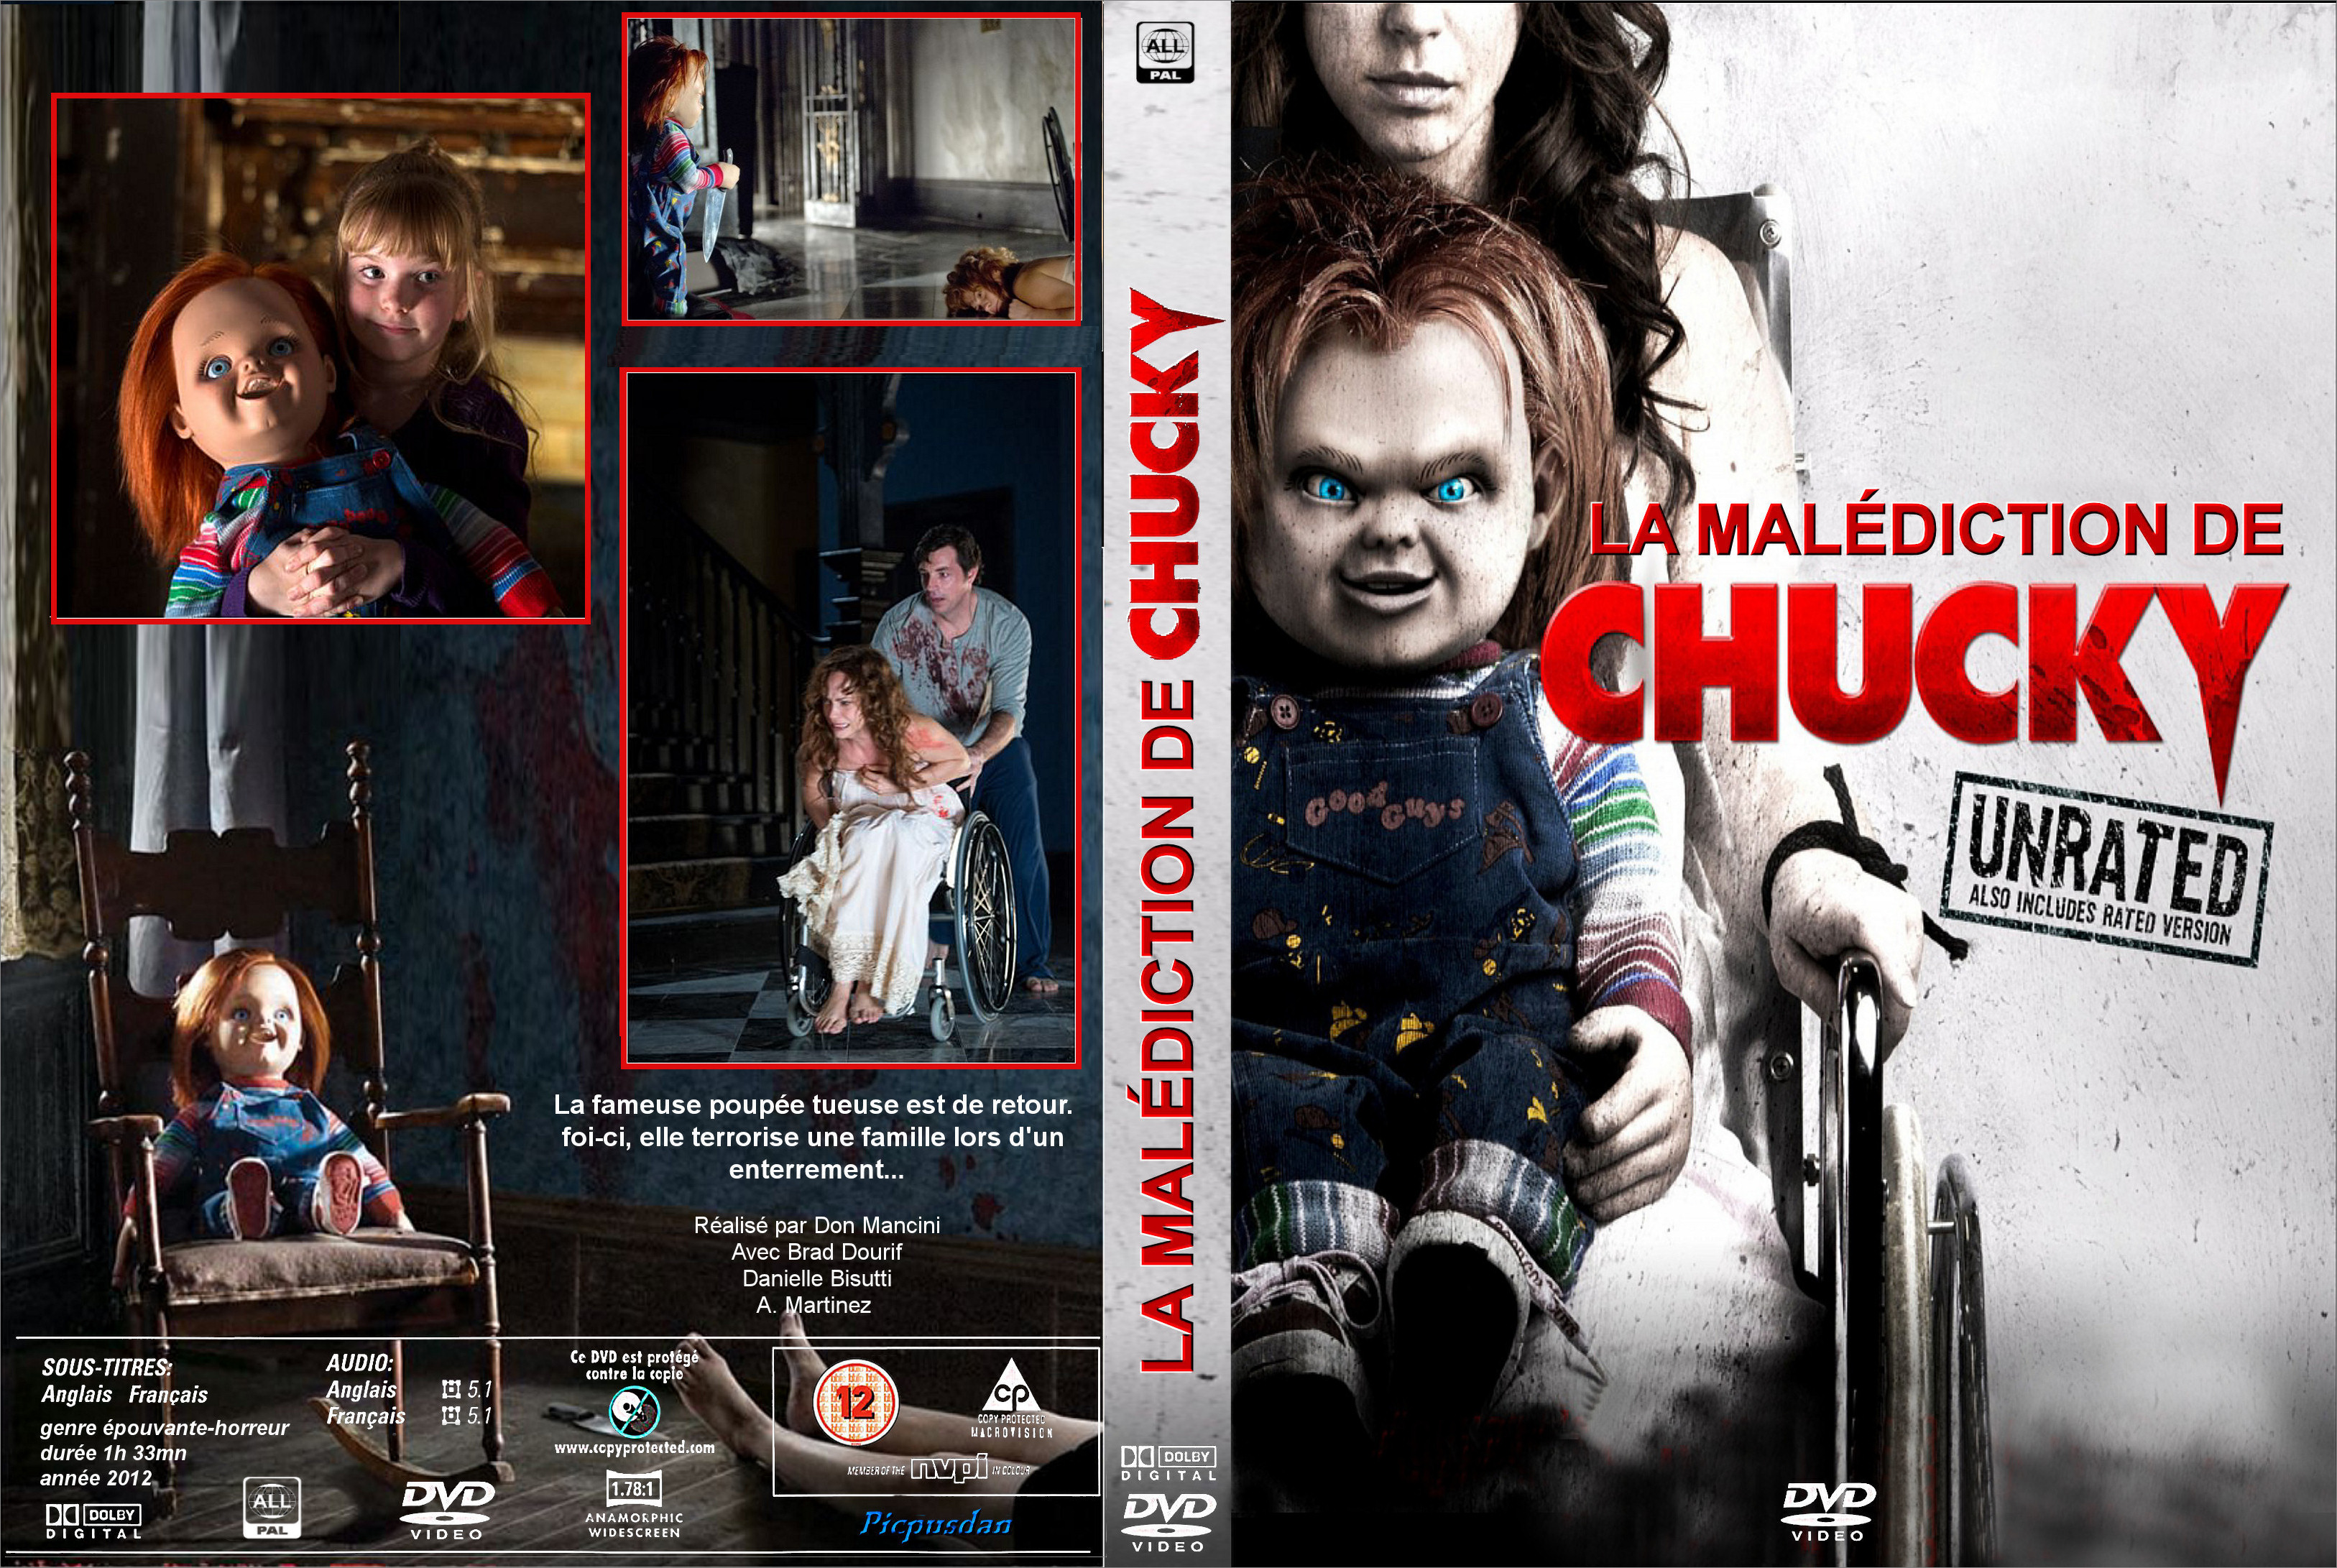 la malediction de chucky